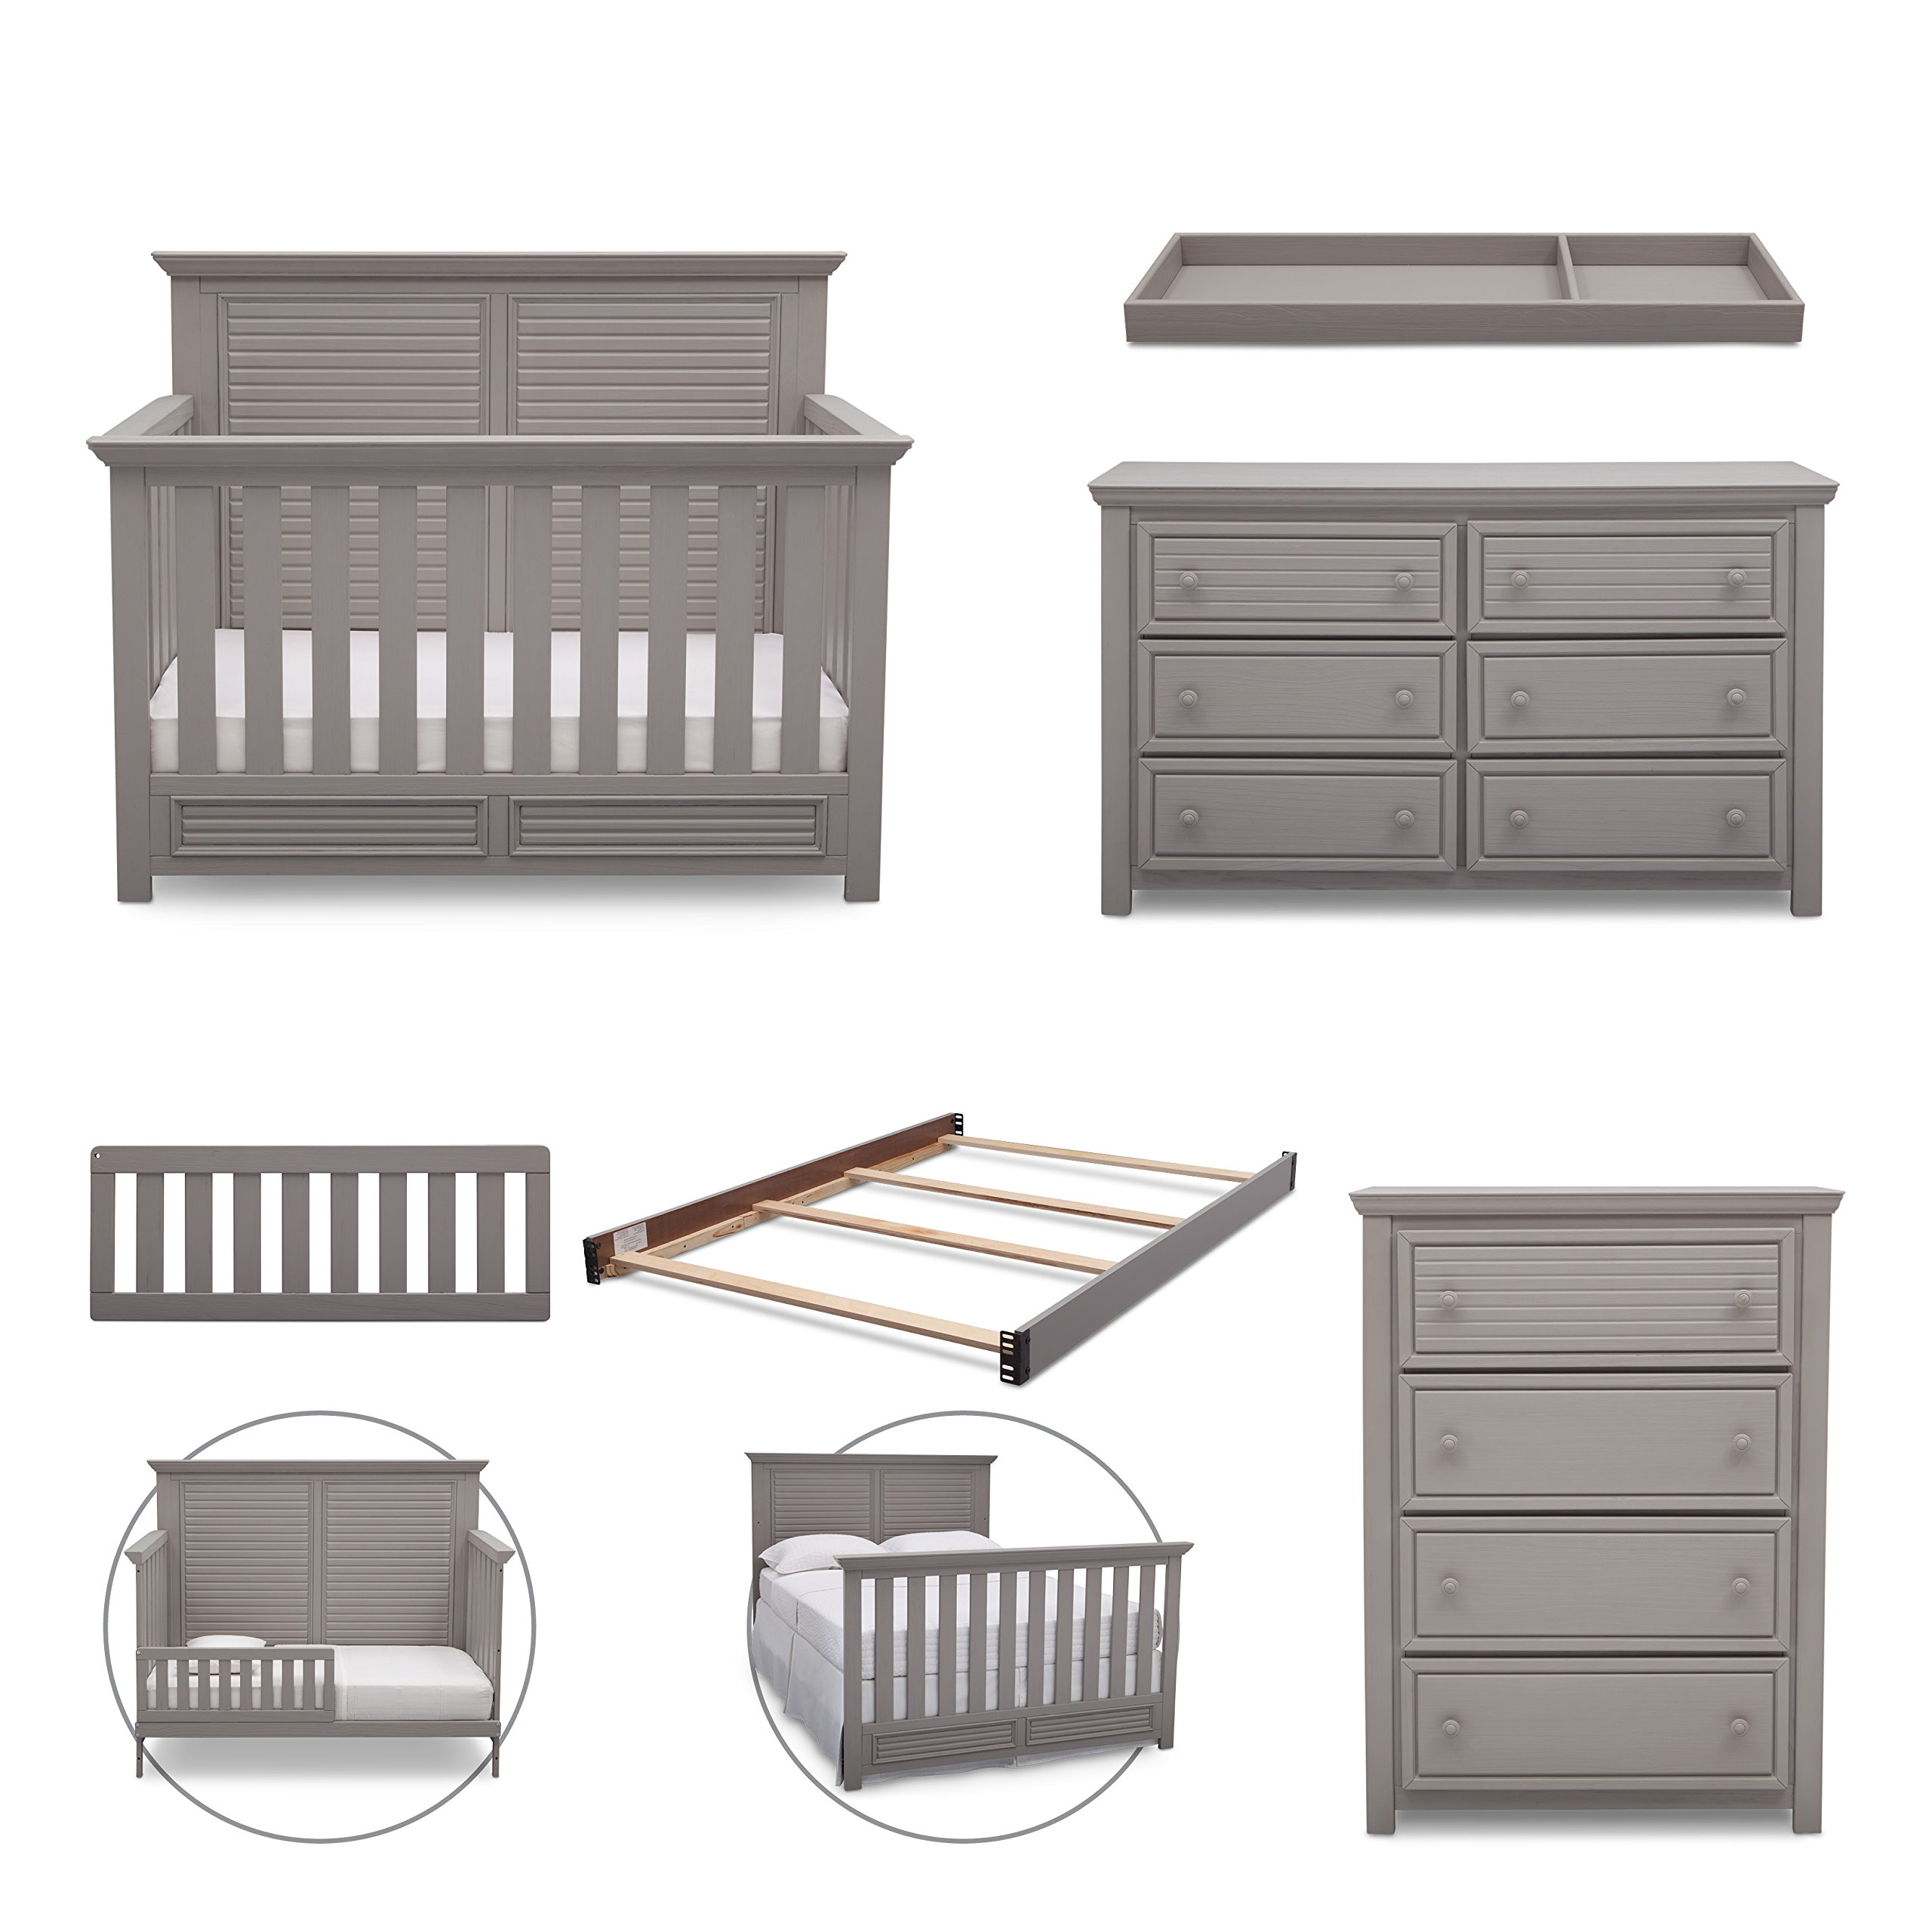 Simmons Kids Oakmont 6-Piece Nursery Furniture Set (Convertible Crib, Dresser, Chest, Changing Top, Toddler Guardrail, Full Size Conversion), Rustic Haze/Grey